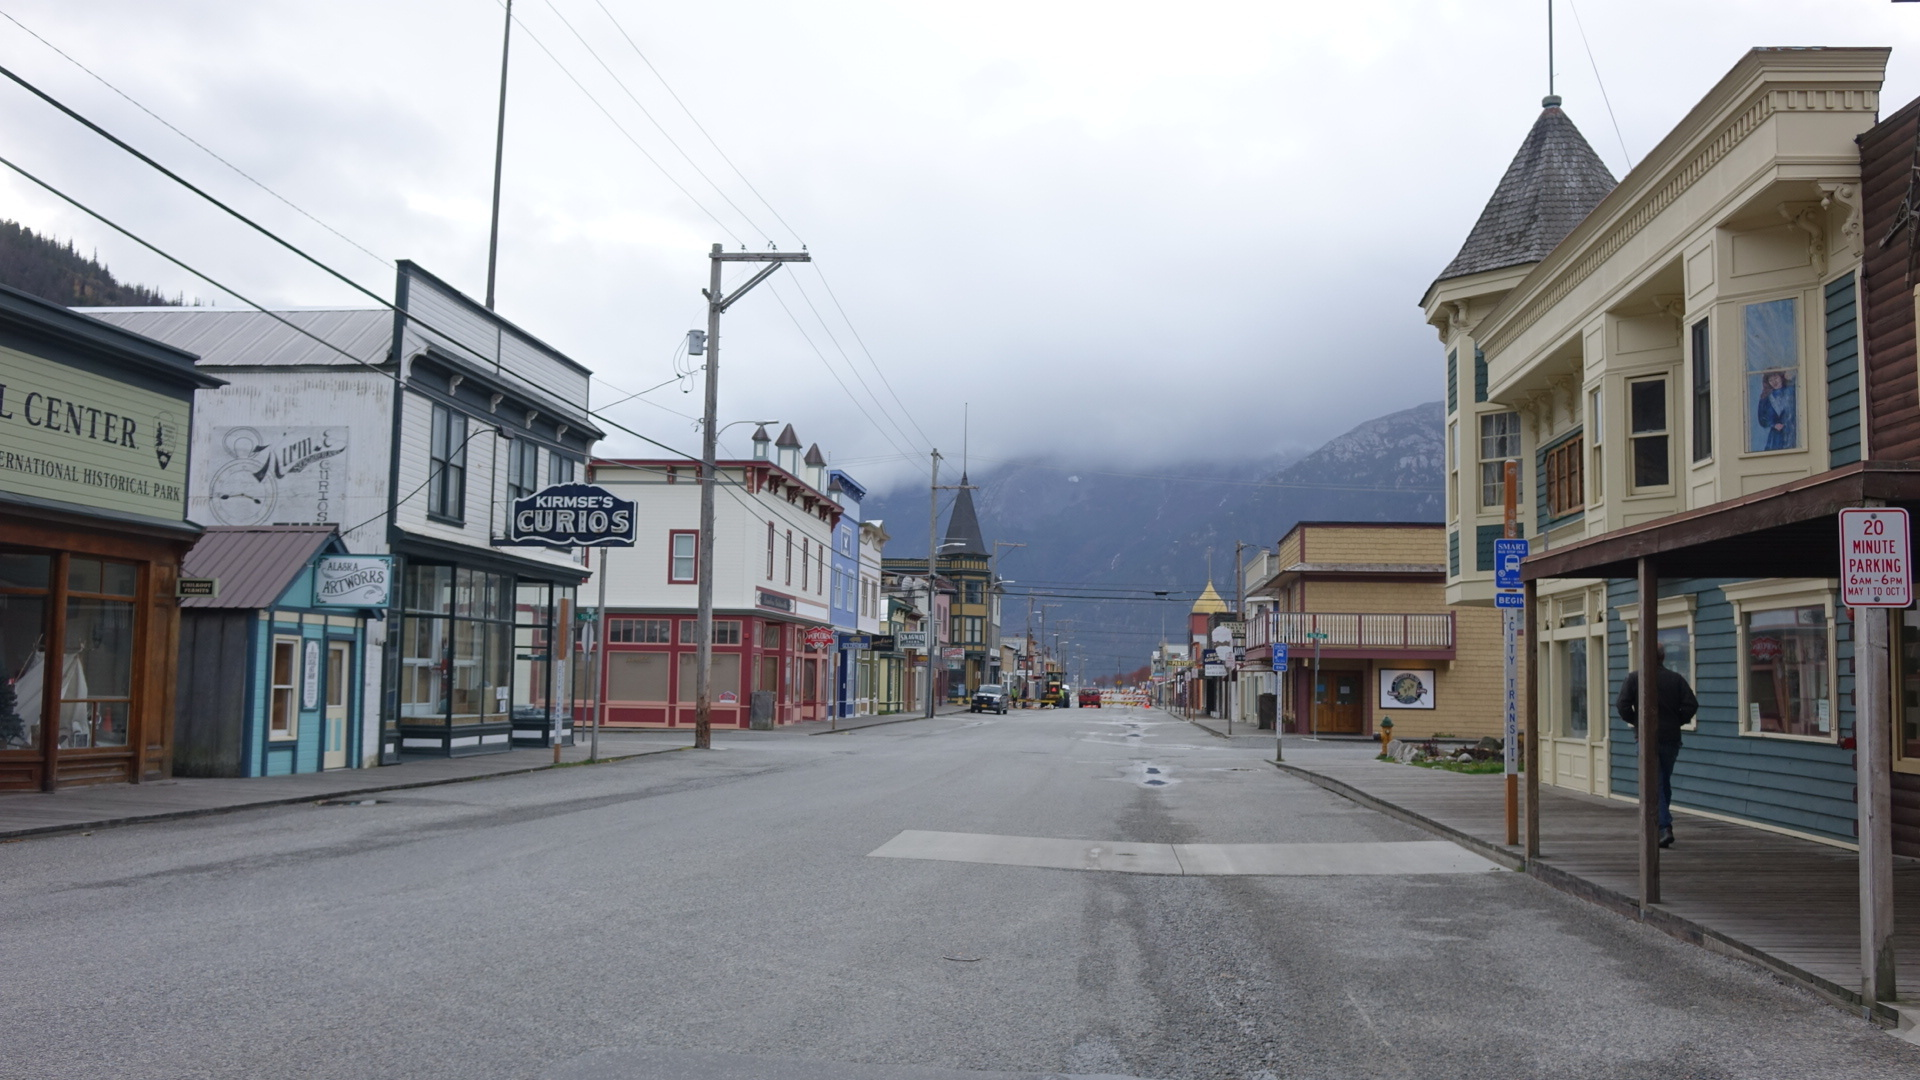 These days, the streets of Skagway are much quieter in the fall. (Claudiane Samson/Radio-Canada)